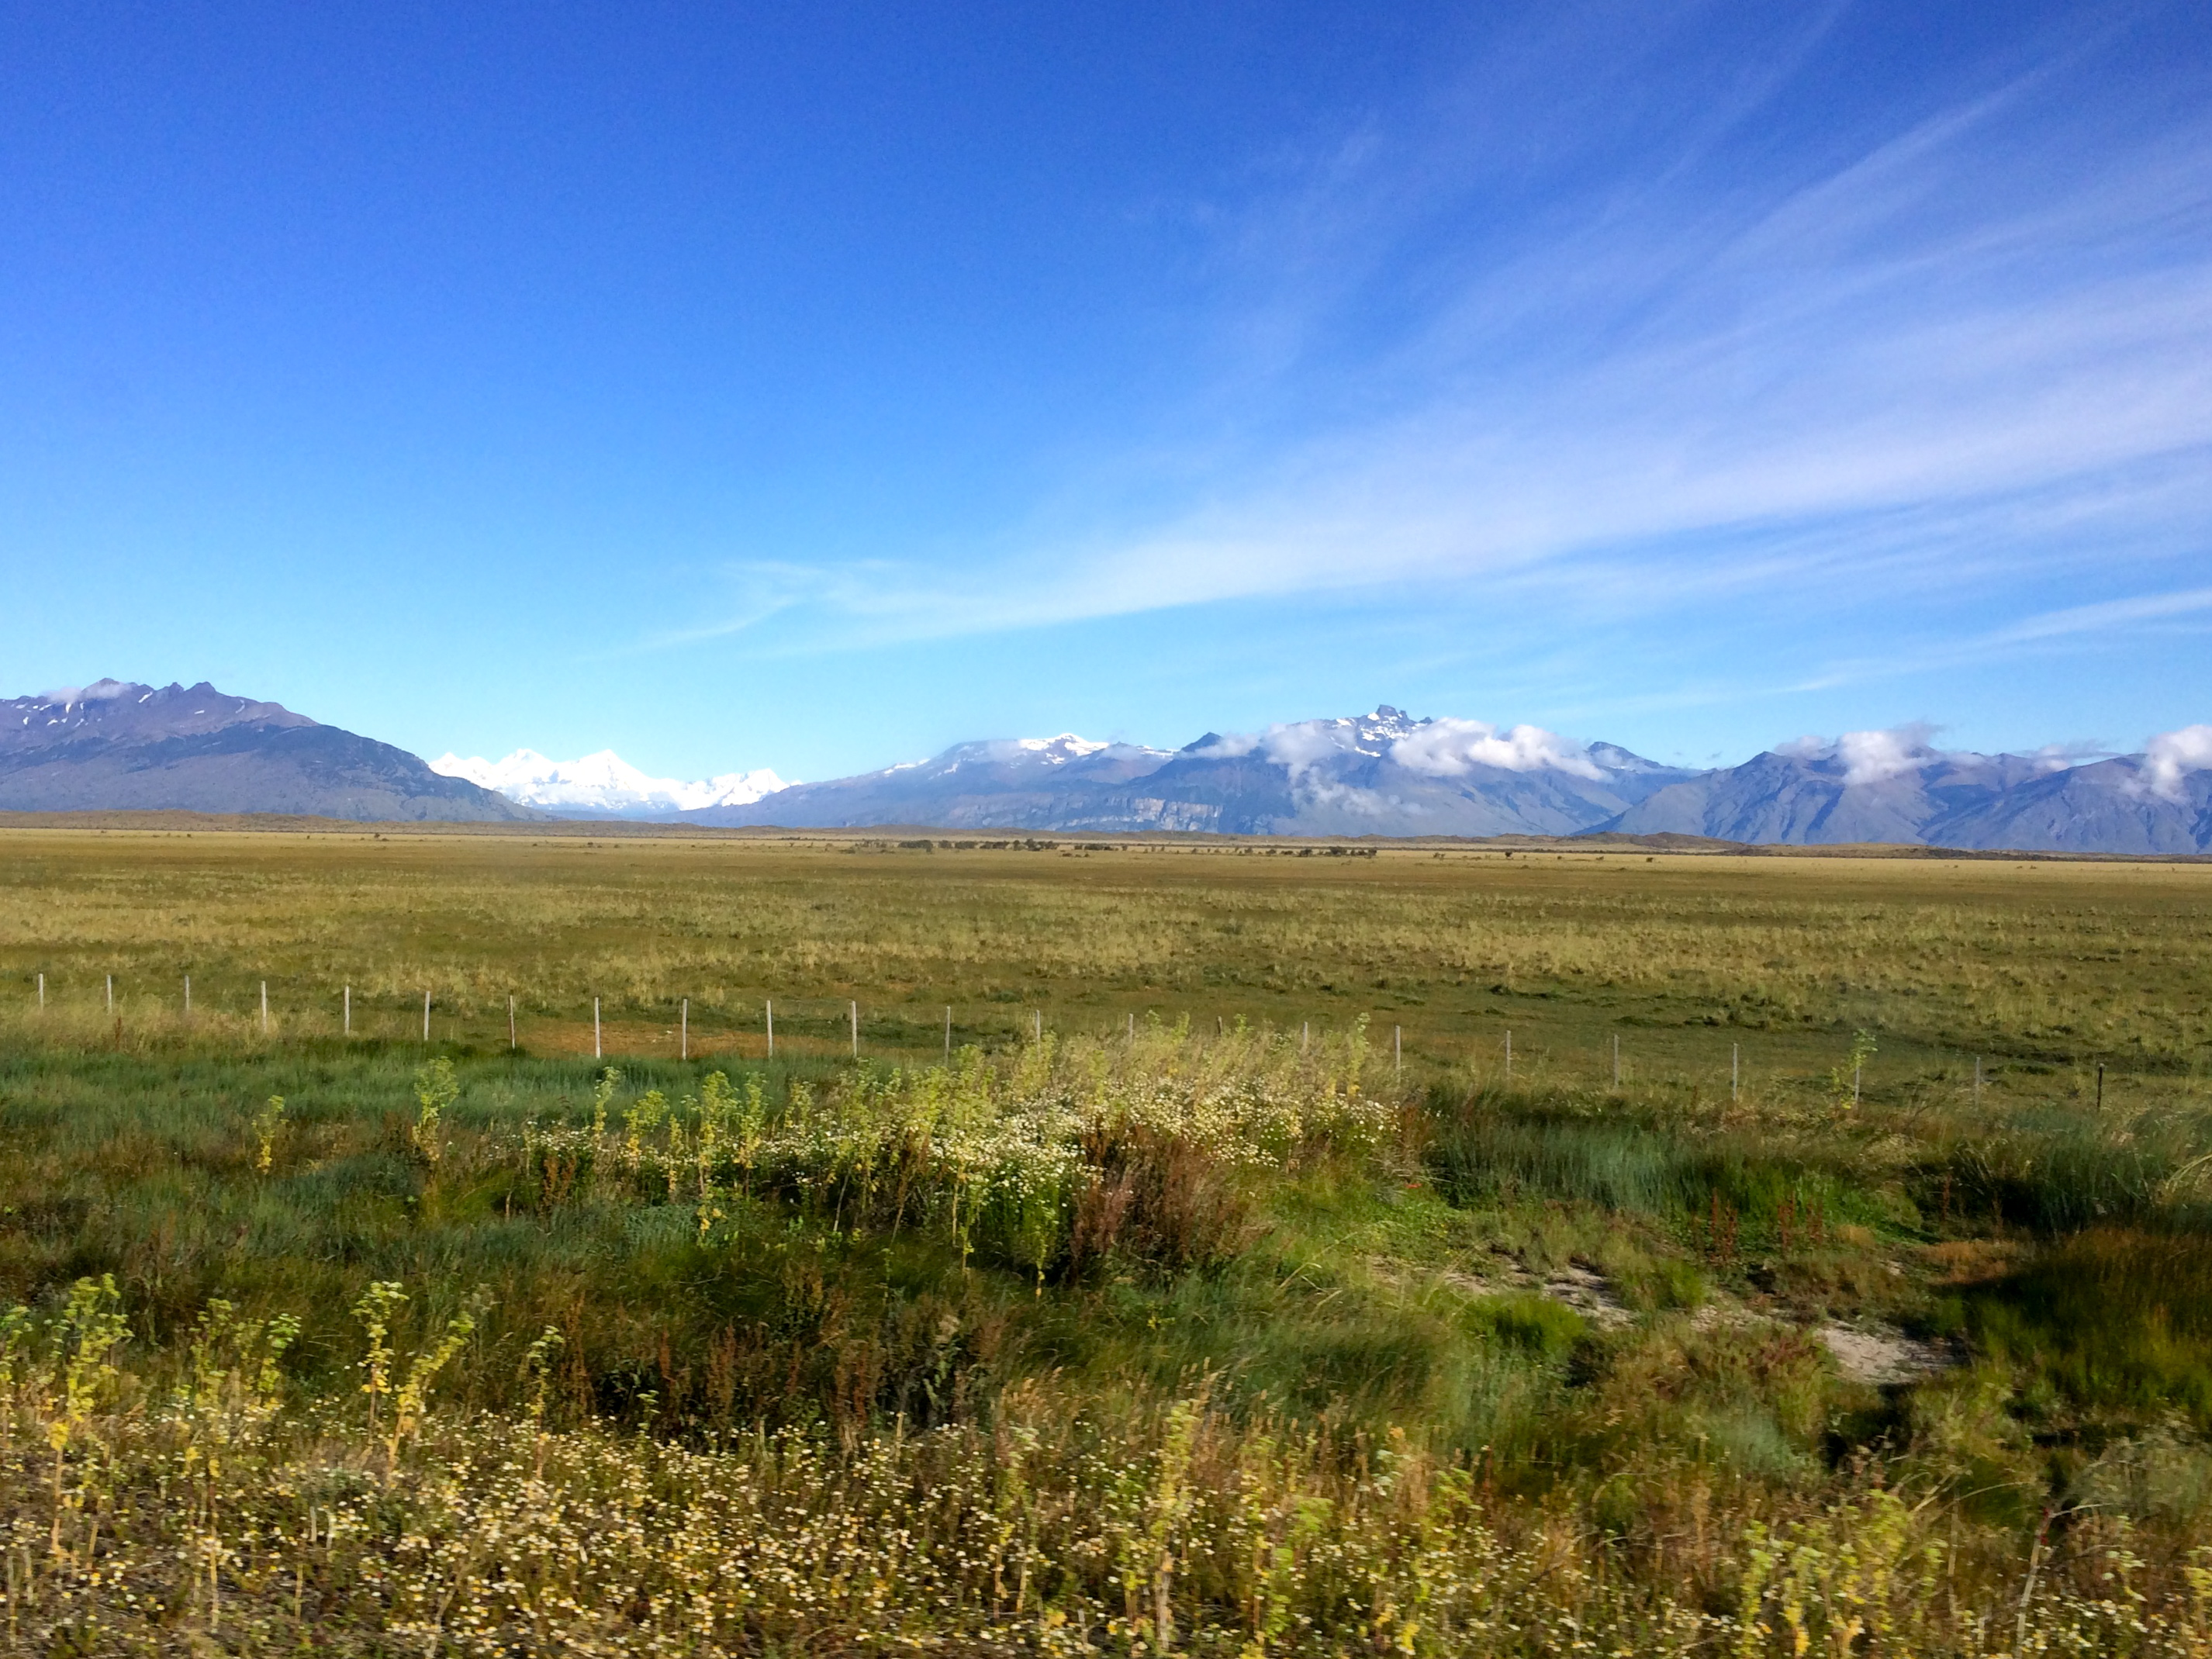 Bus ride to El Calafate | Photo by Wilson Carletti (All Rights Reserved)